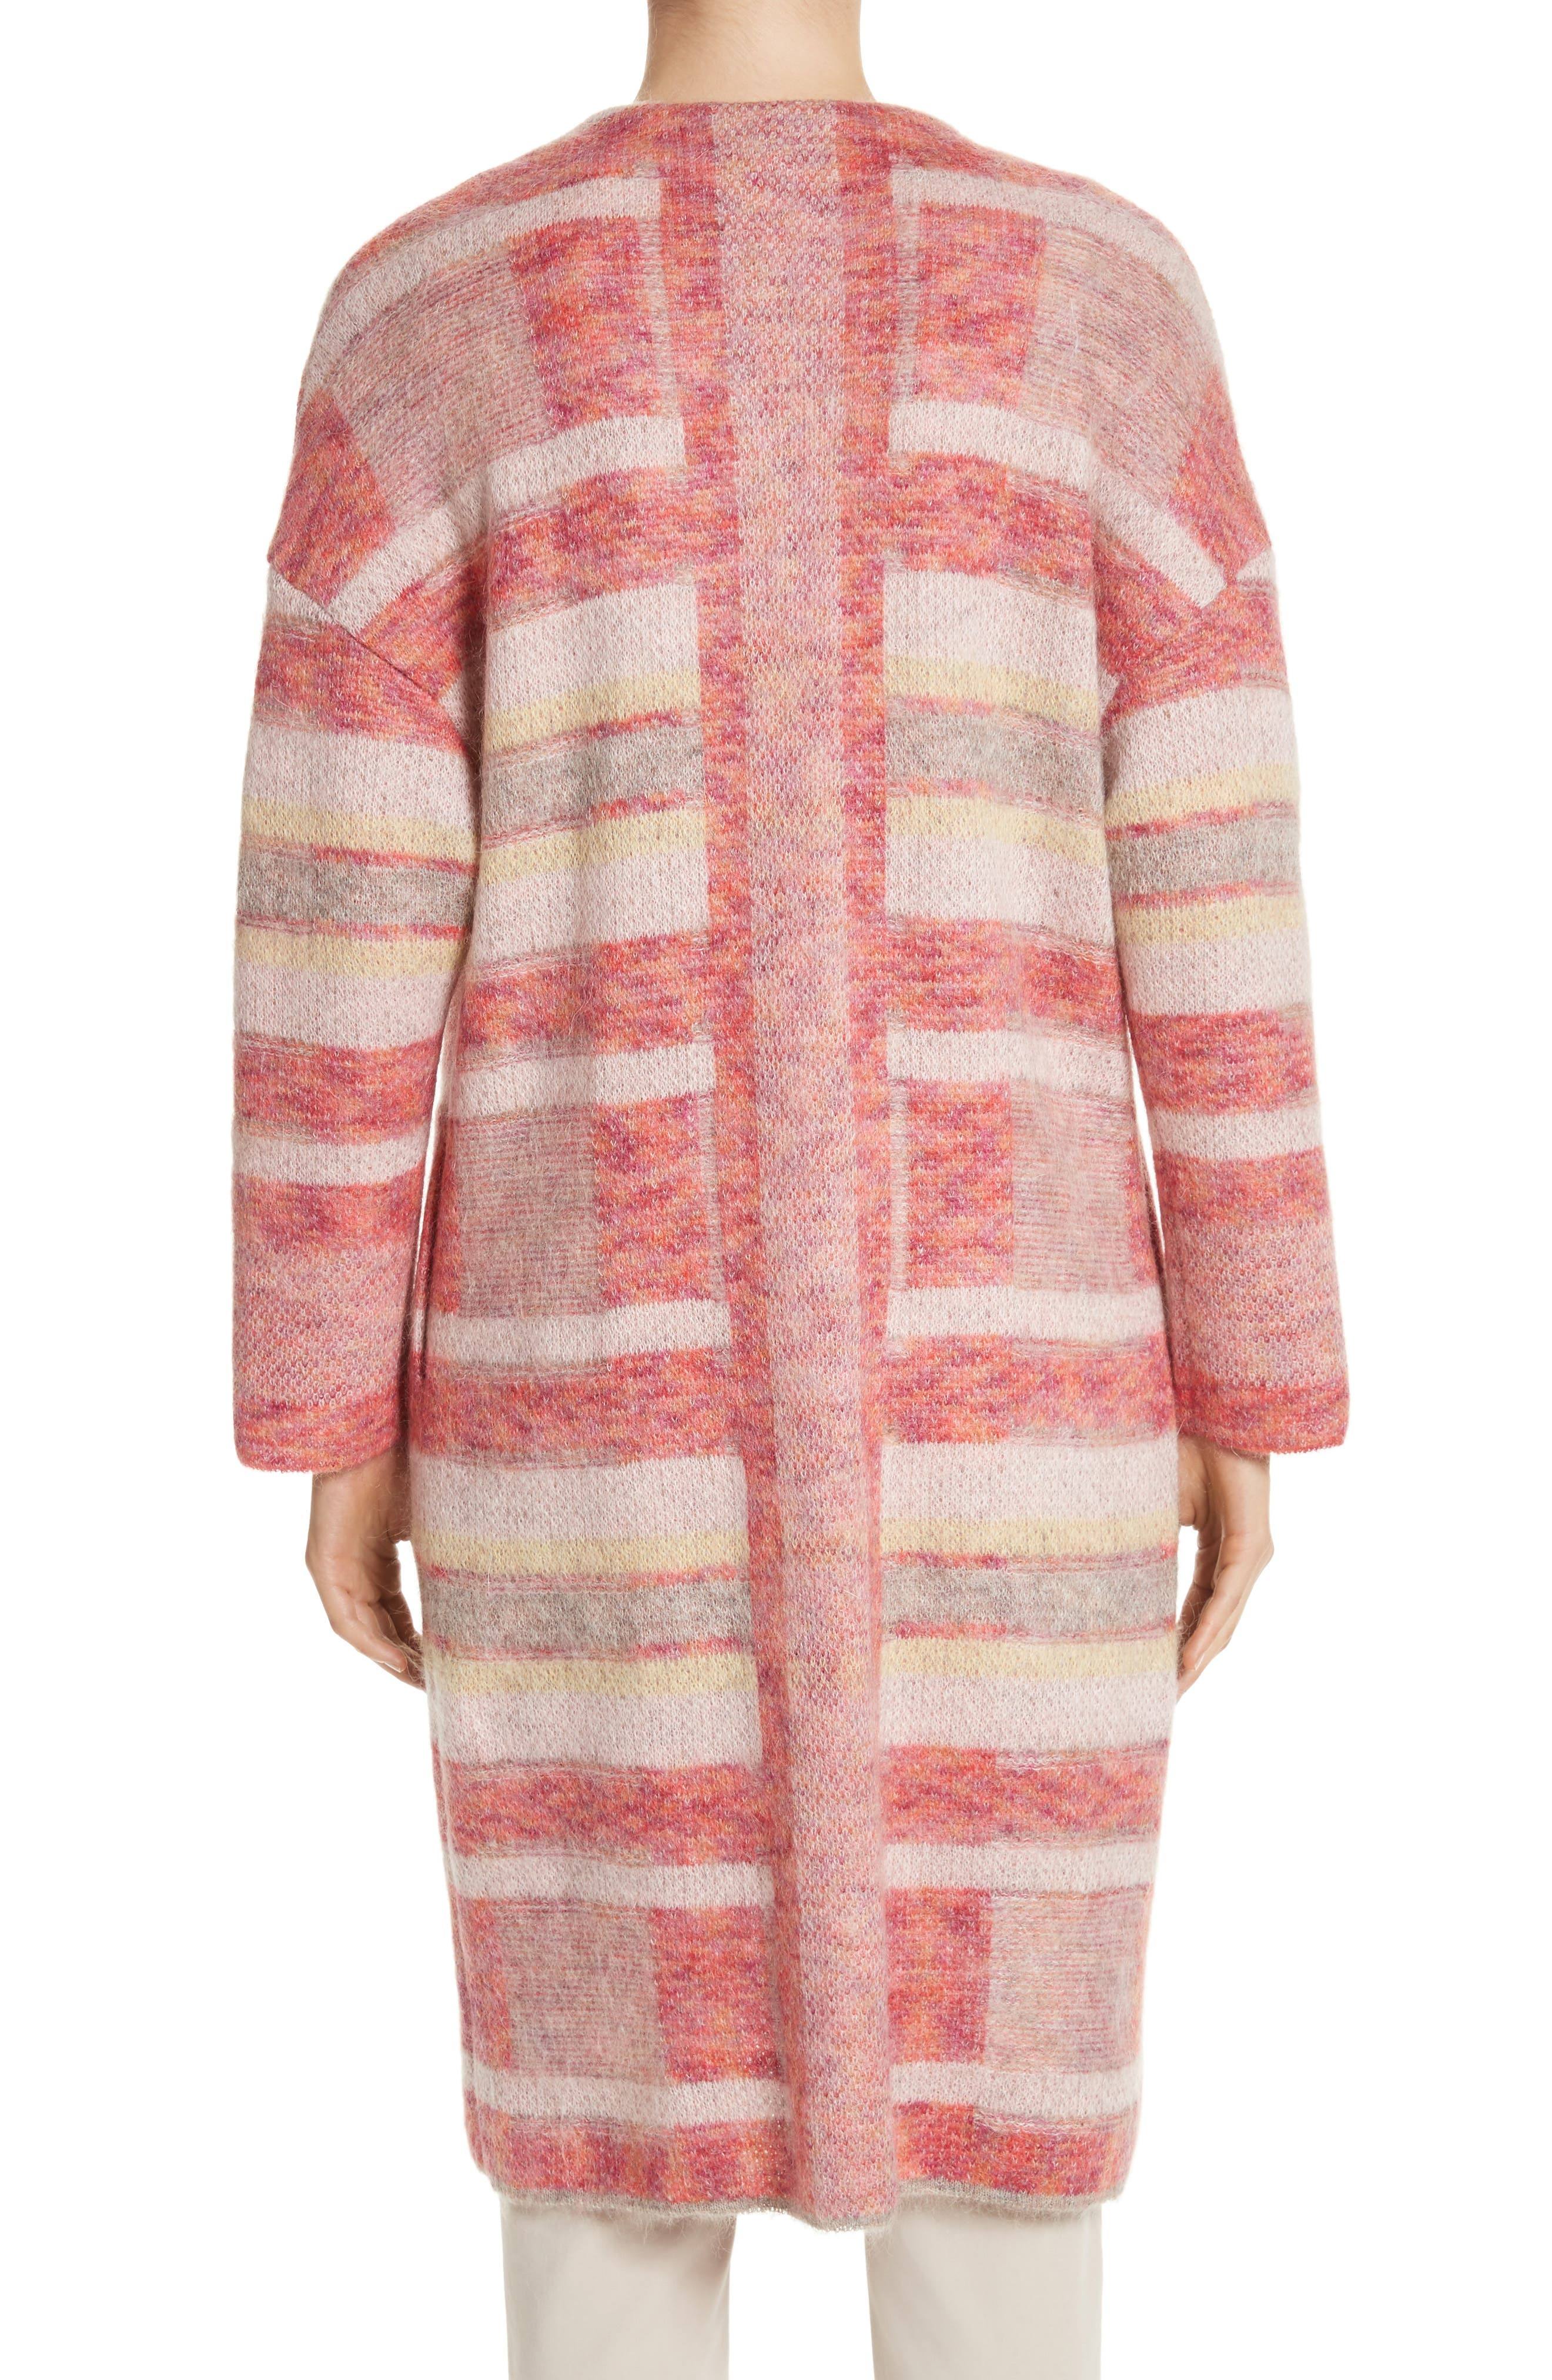 Lofty Knit Plaid Blanket Coat,                             Alternate thumbnail 2, color,                             Bright Coral Multi